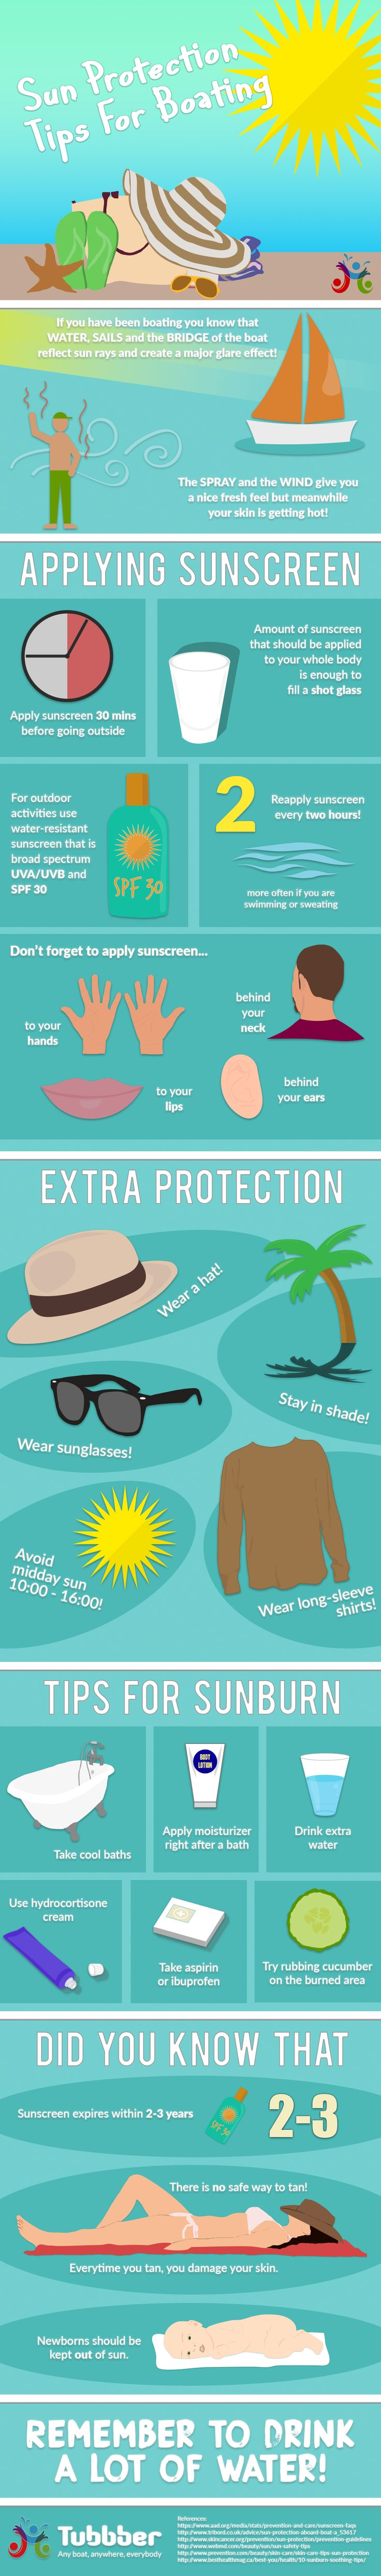 Did you know that sunscreen expires after 2-3 years? Here are some handy tips for sun protection when you go boating the next time!